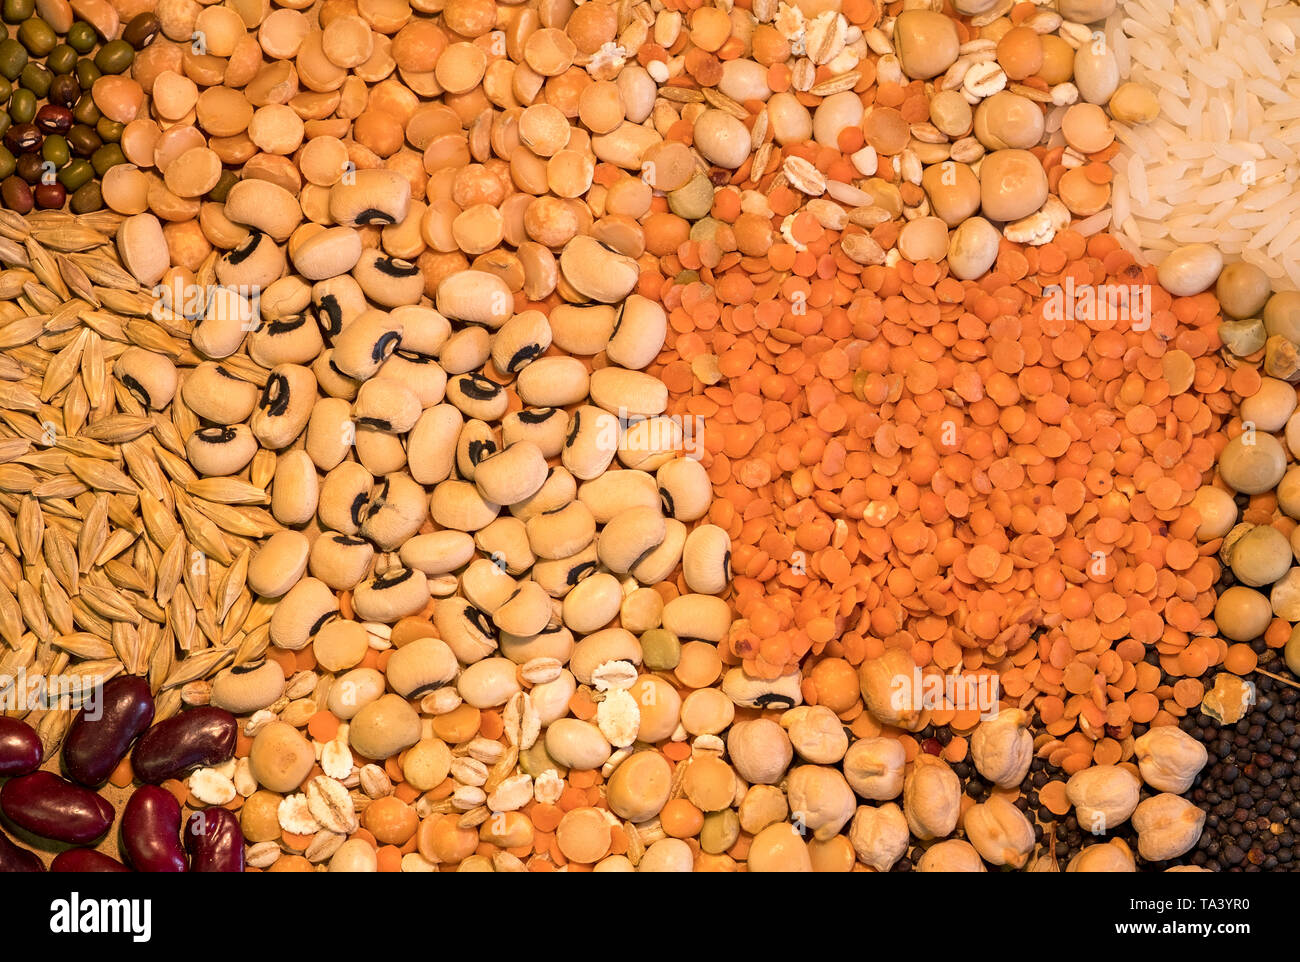 Still life dry cooking ingredients image Stock Photo